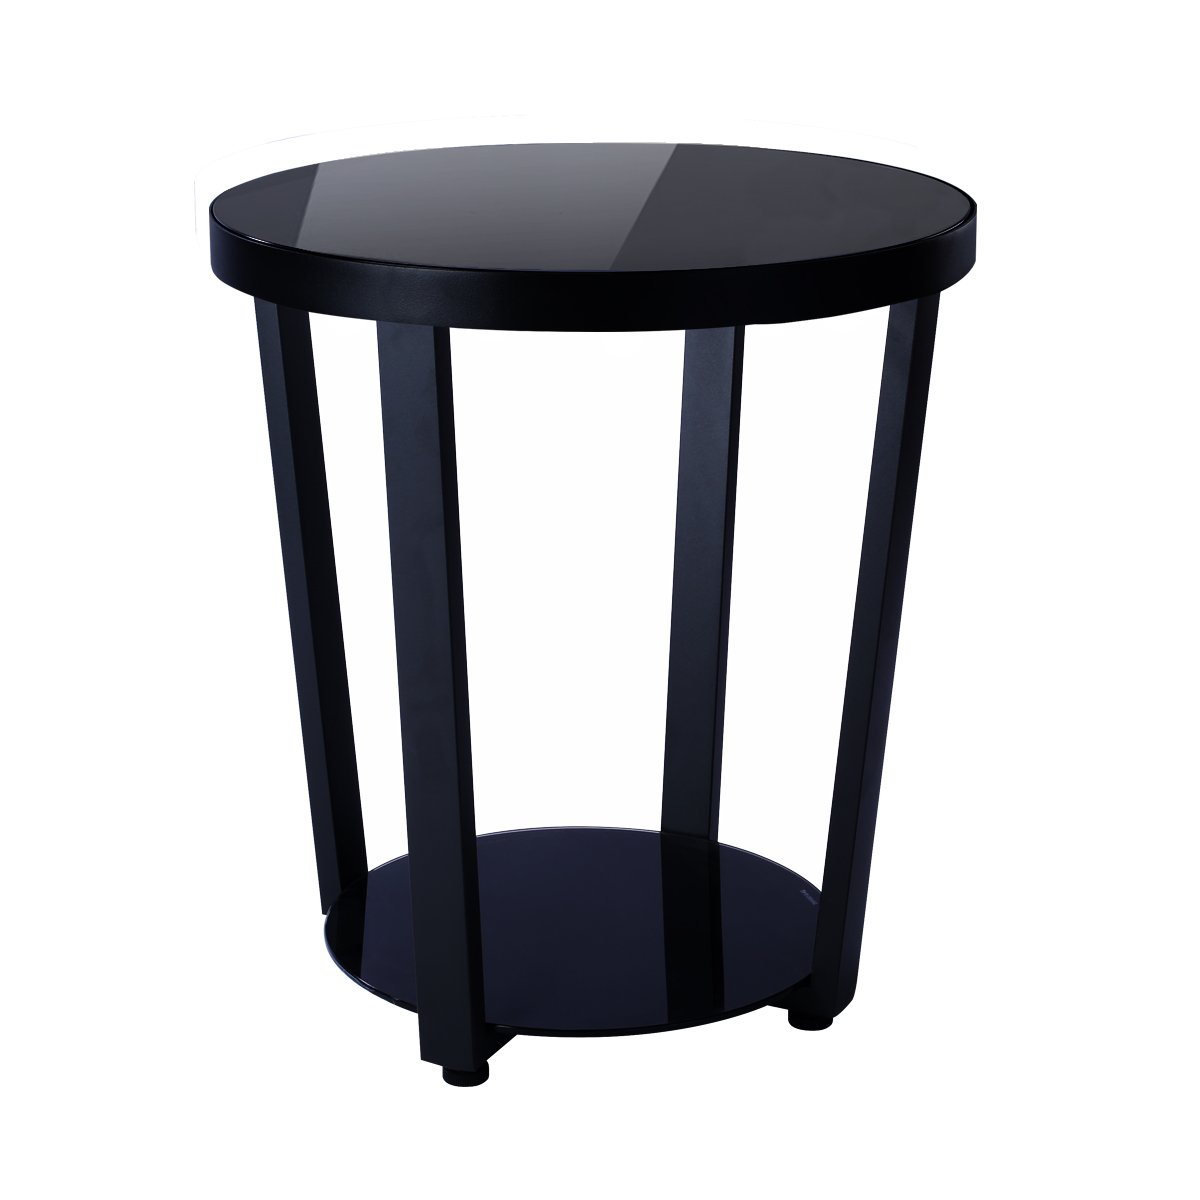 1208S Round Glass Top End Table Living Room Side Table Coffee Table, Black